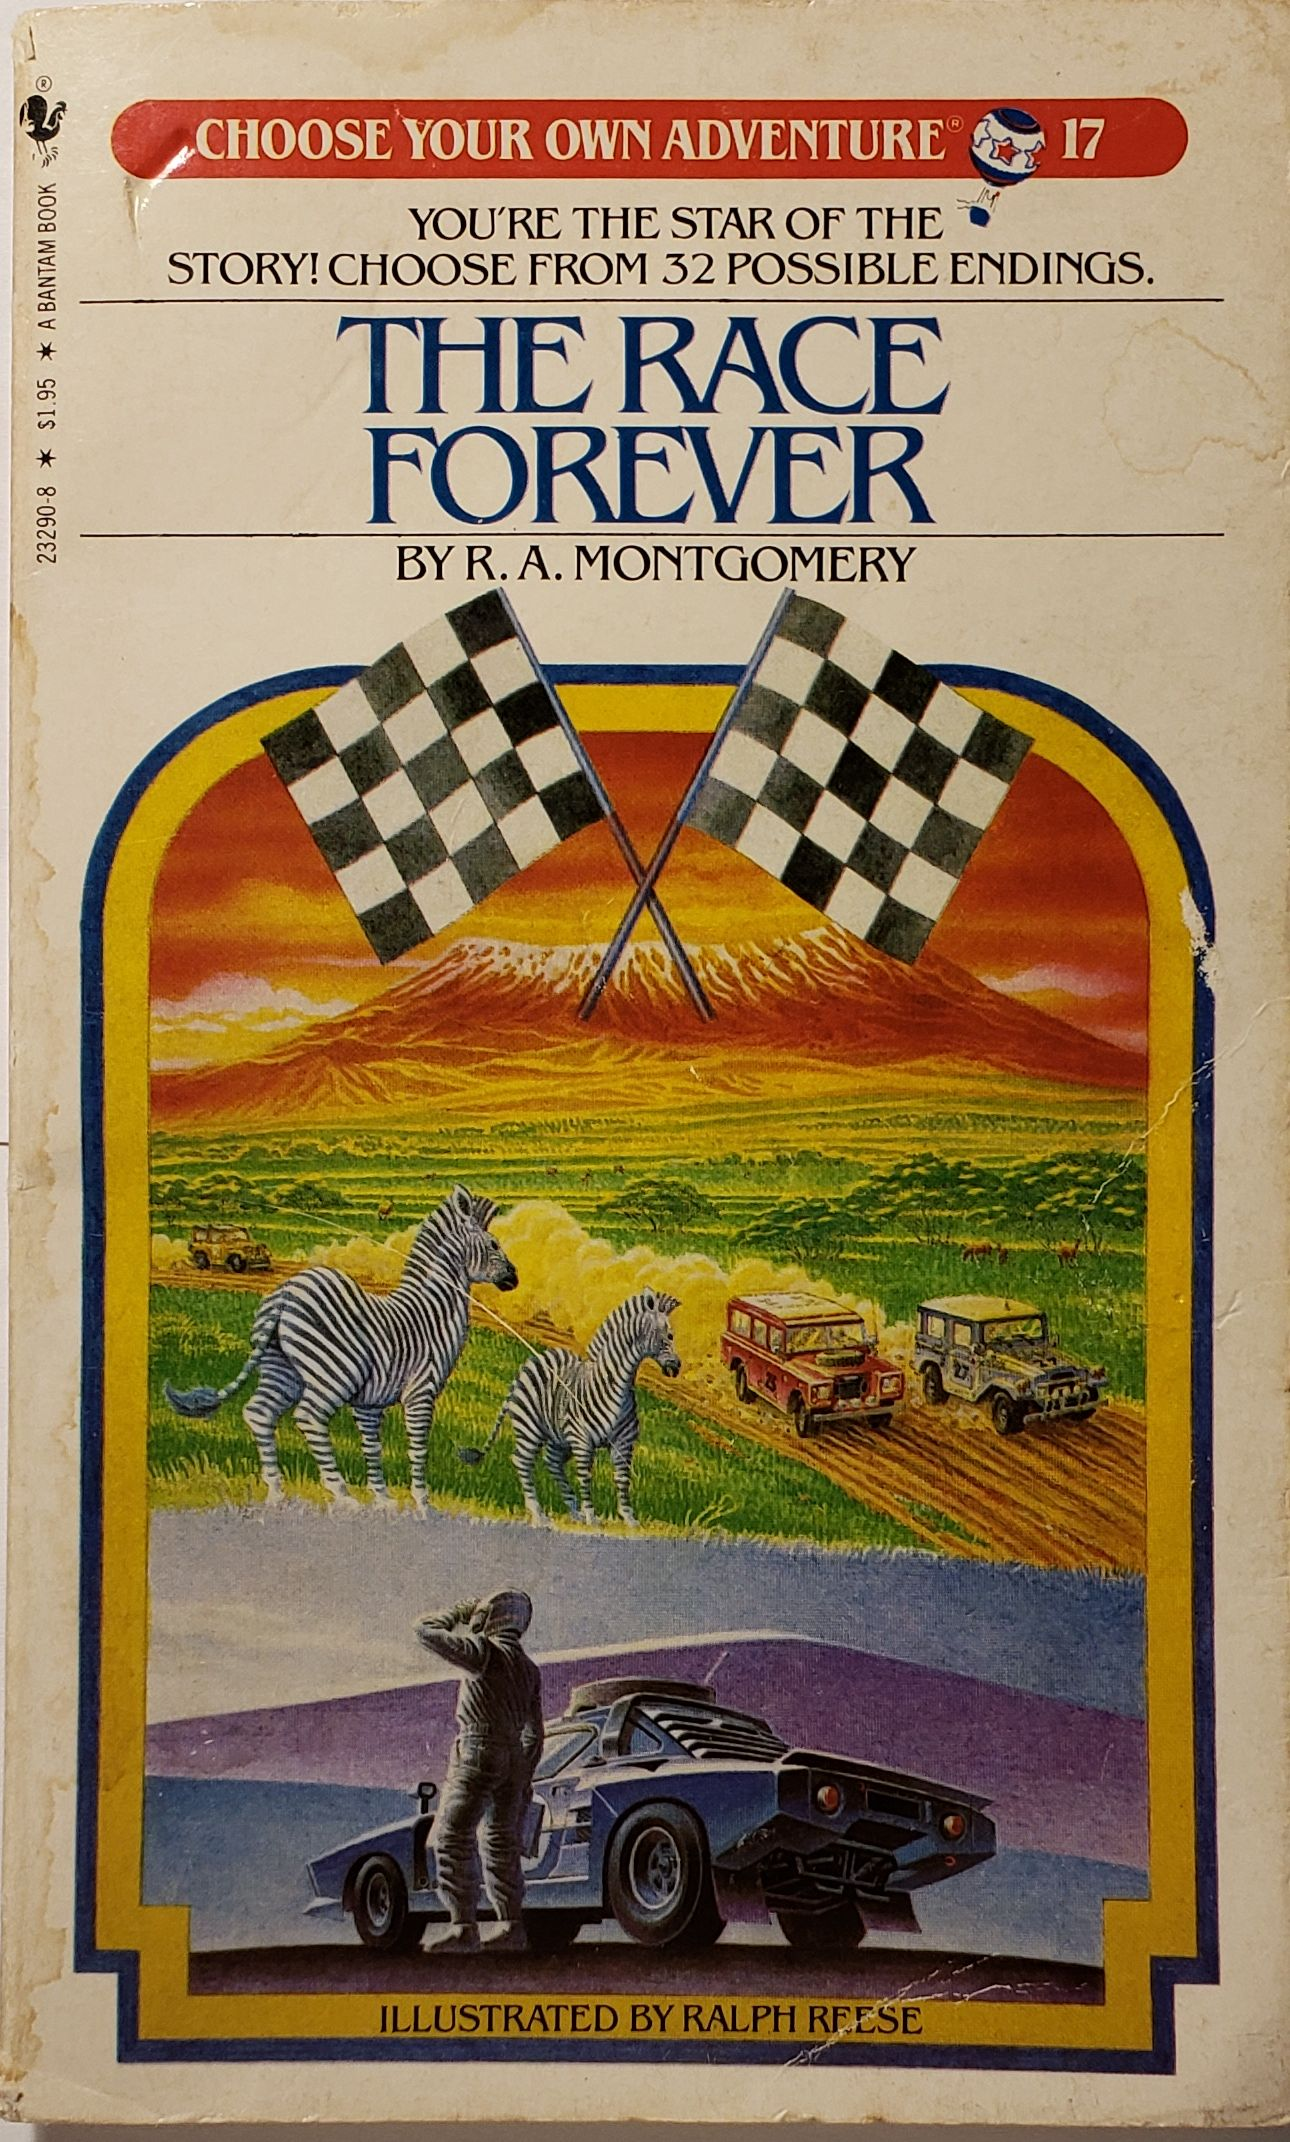 The Race Forever